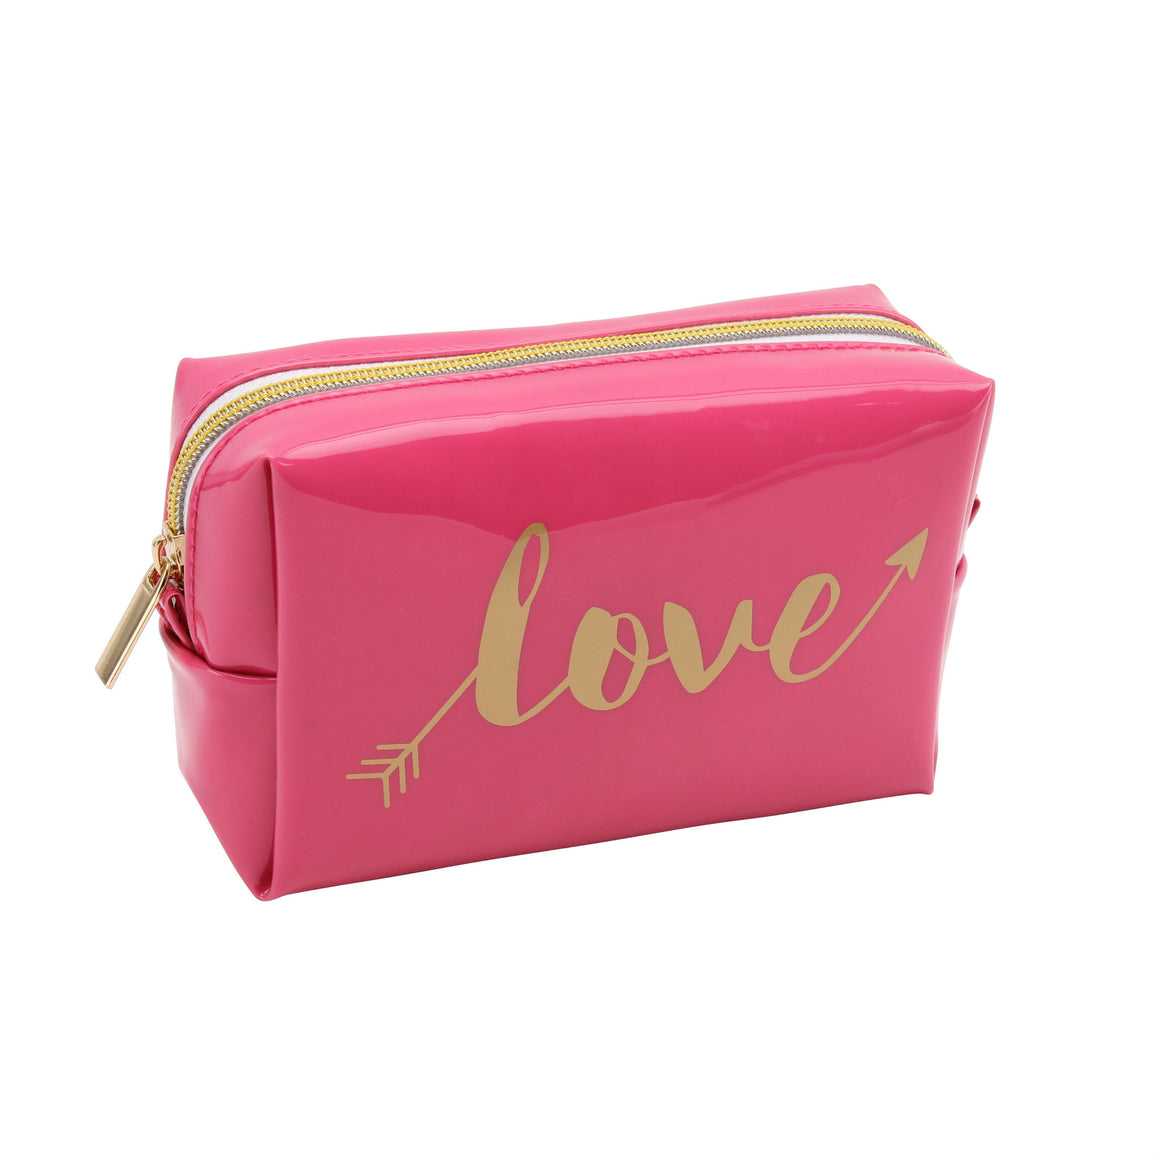 'Love' Arrow Pink Oh So Pretty Make Up Bag - The Love Trees